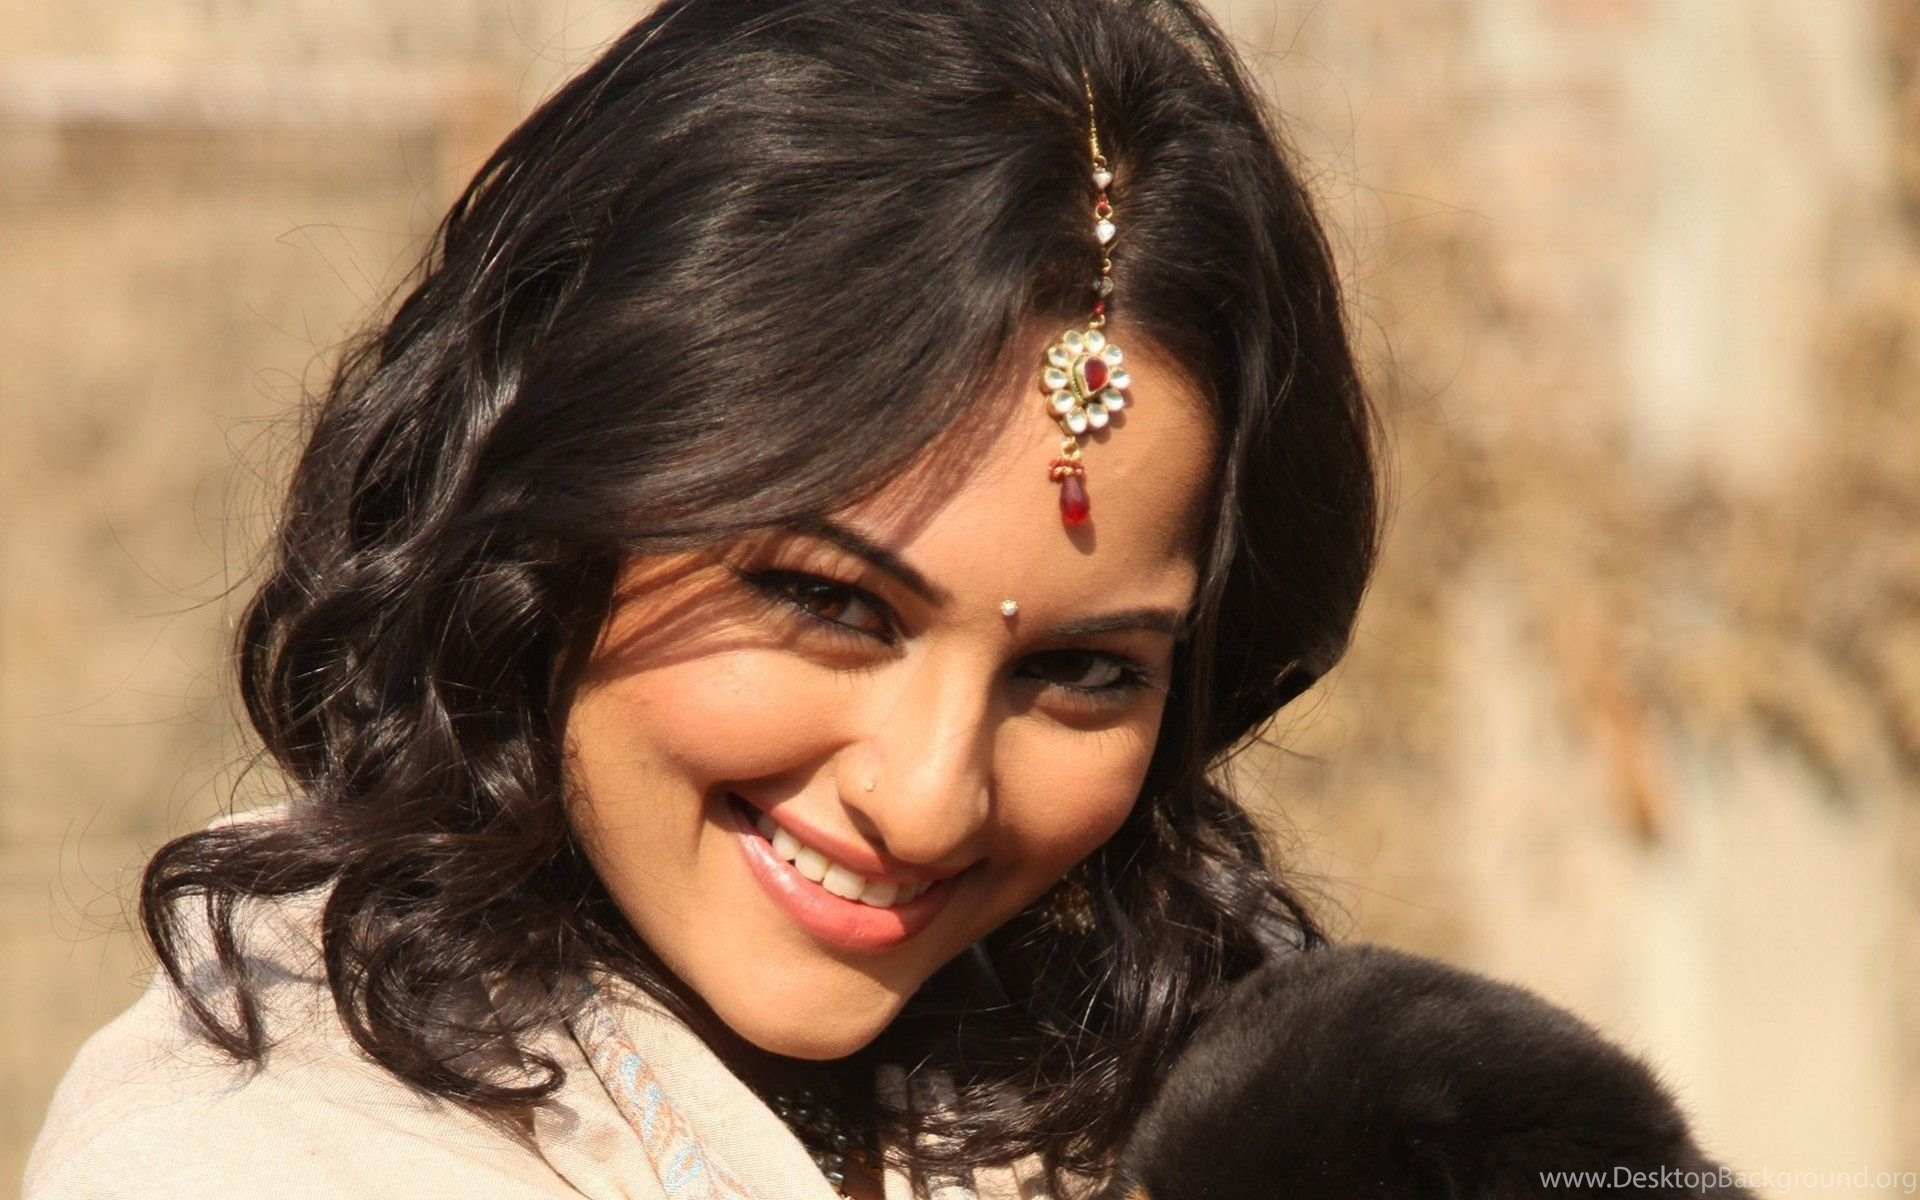 sonakshi sinha beautiful smile hd wallpapers desktop background